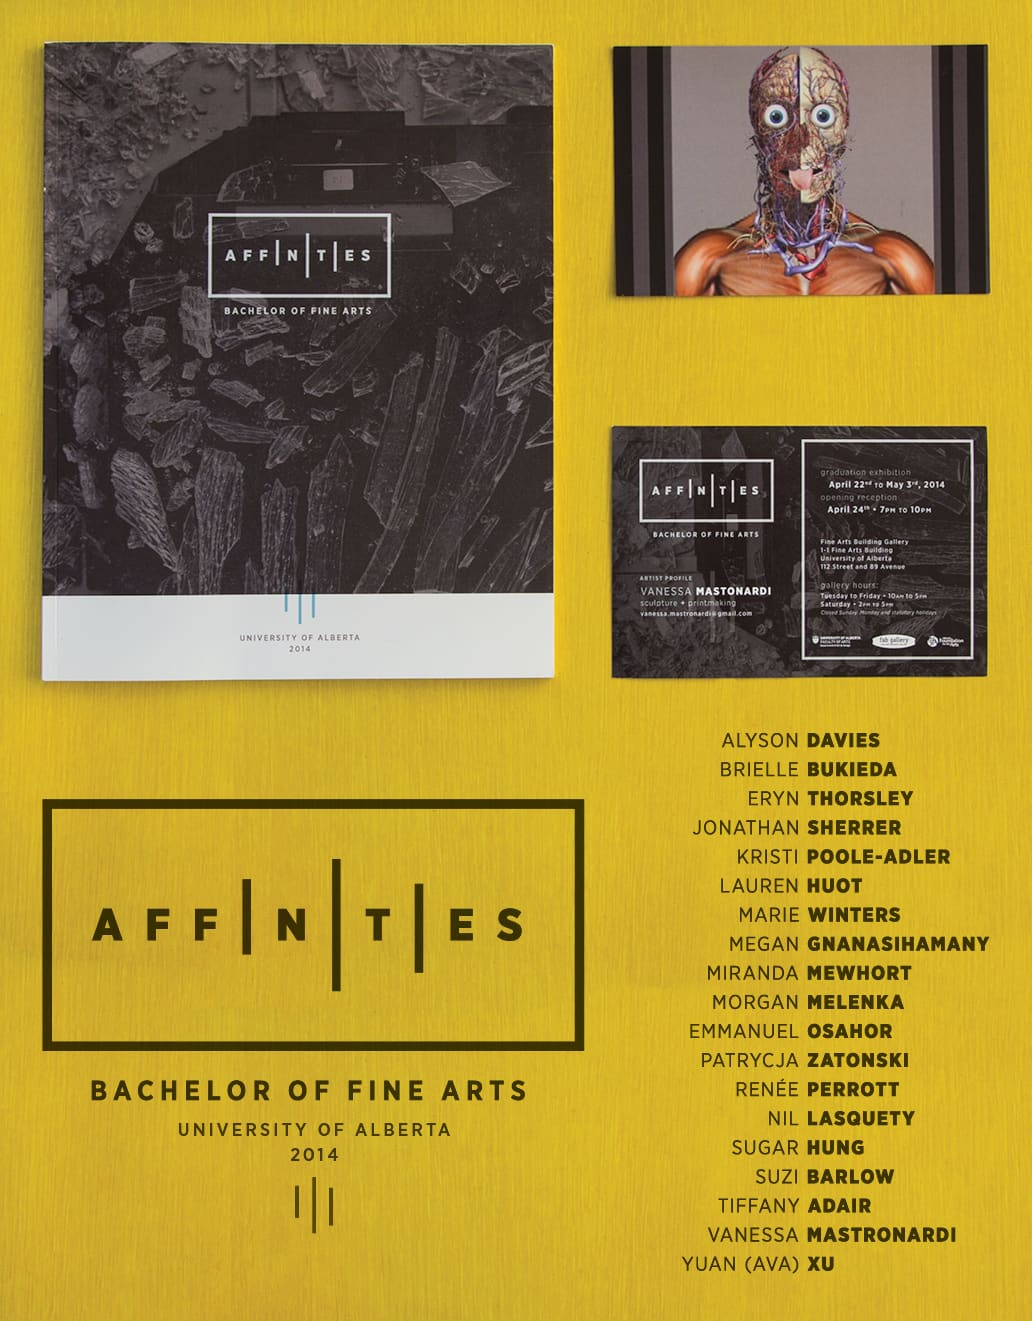 Affinities U of A Graduation Catalogue and Identity Design